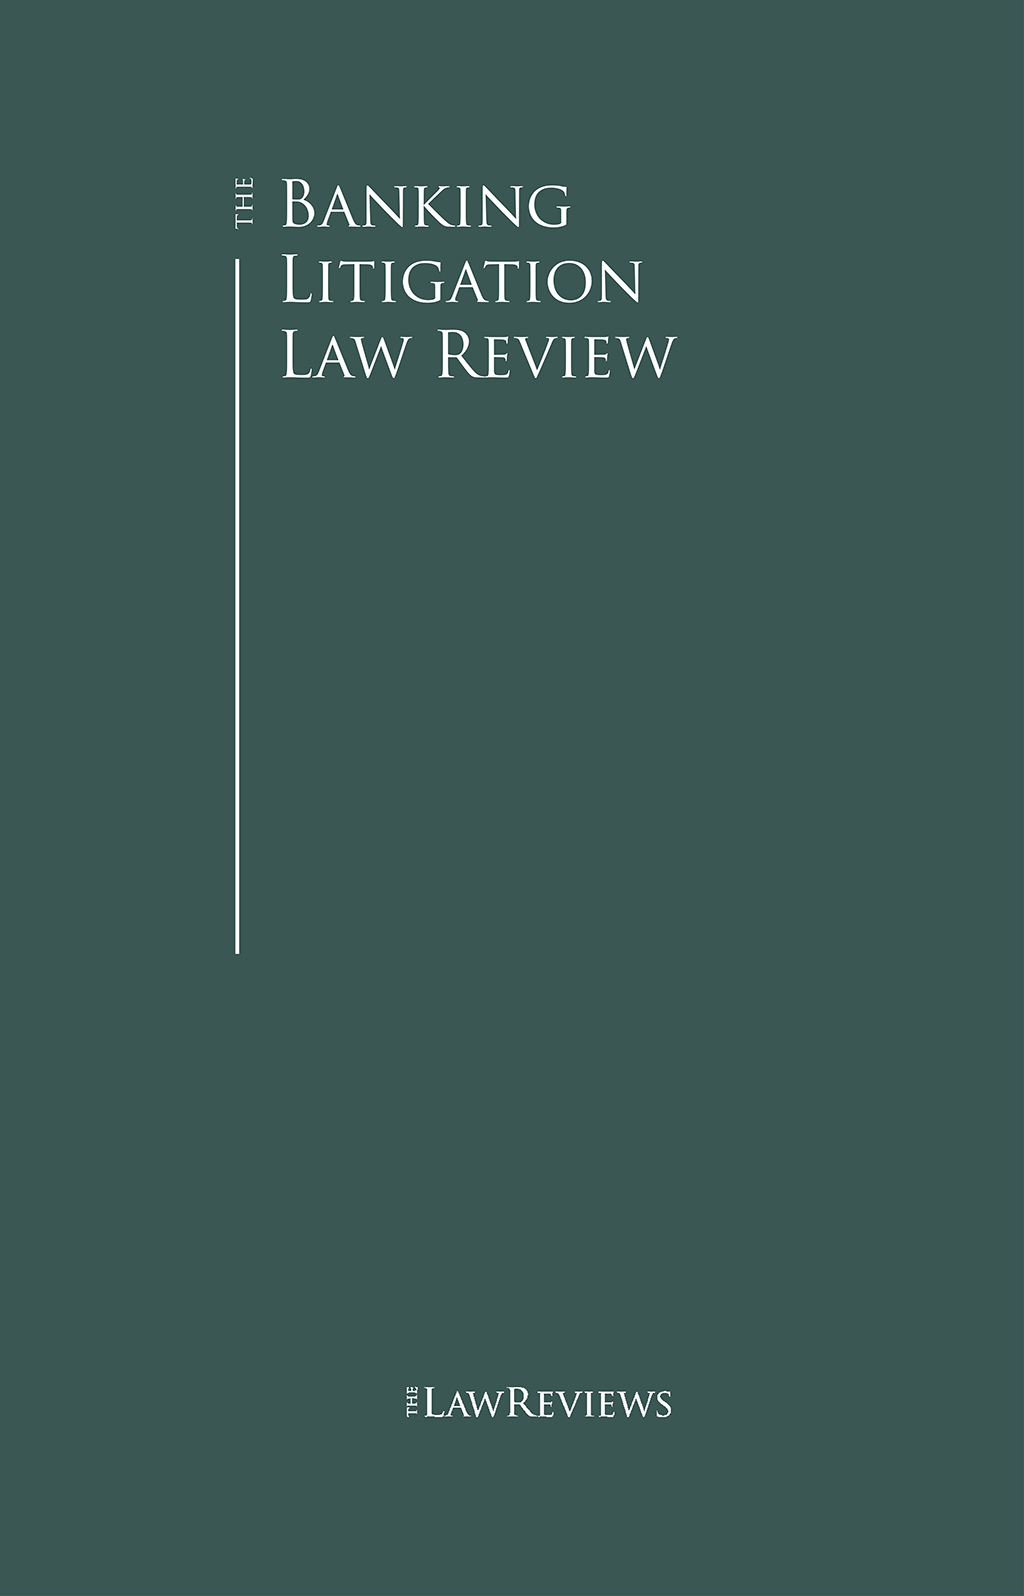 The Banking Litigation Law Review